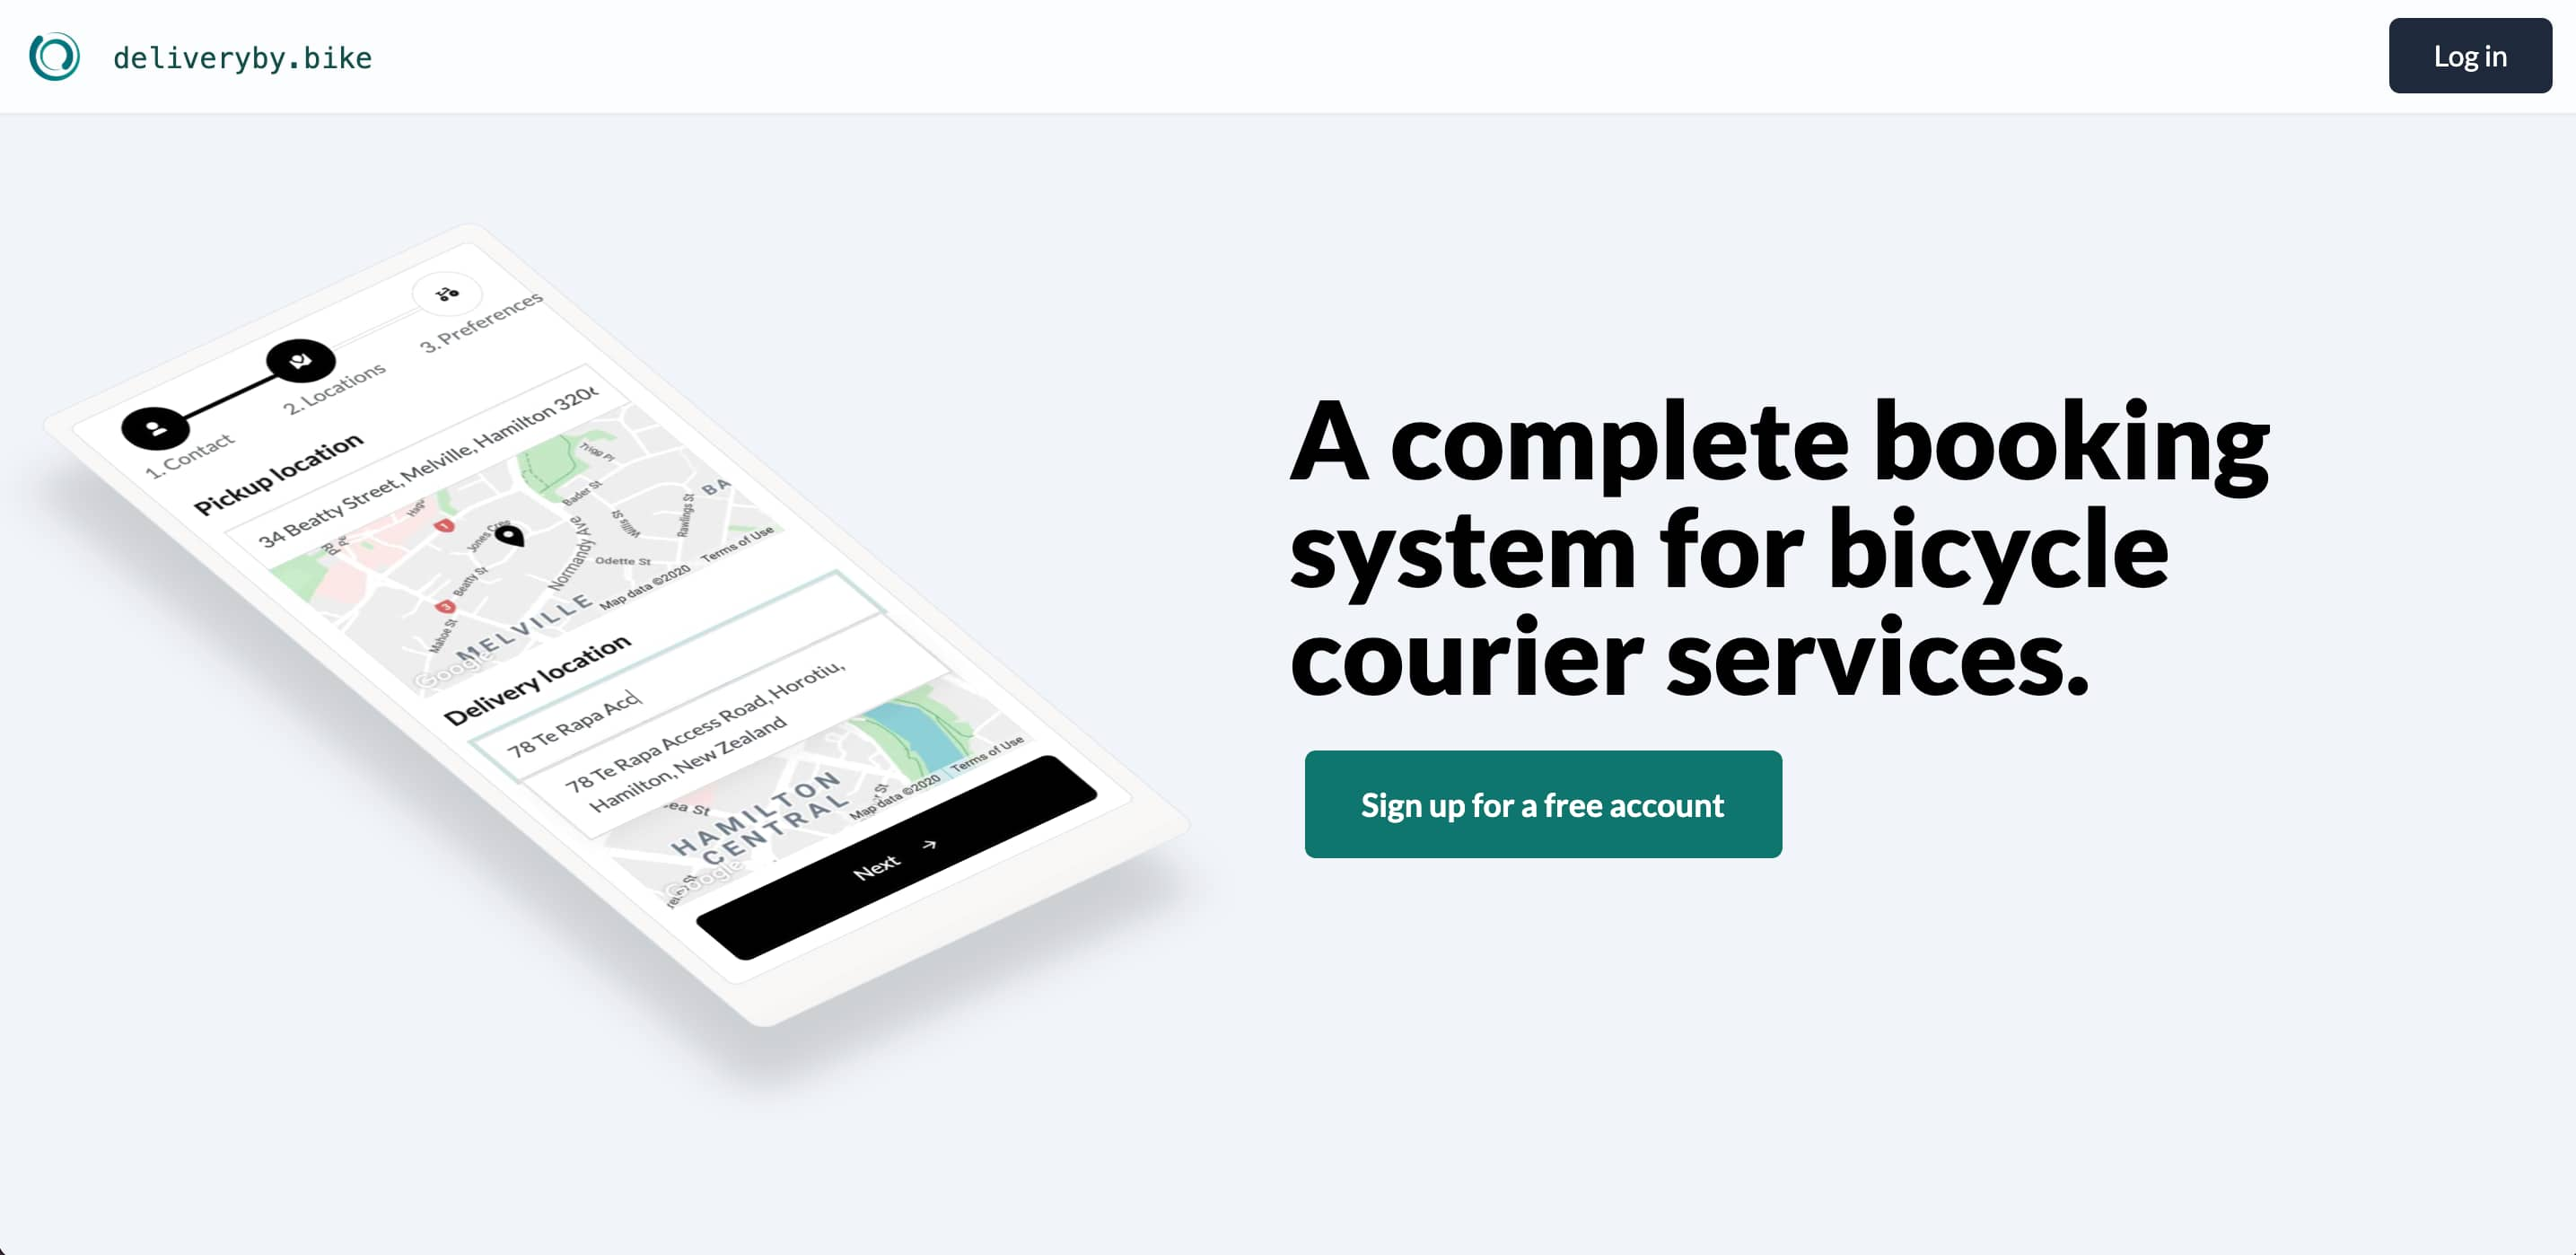 Case study: Deliveryby.bike, an ordering system for bike couriers